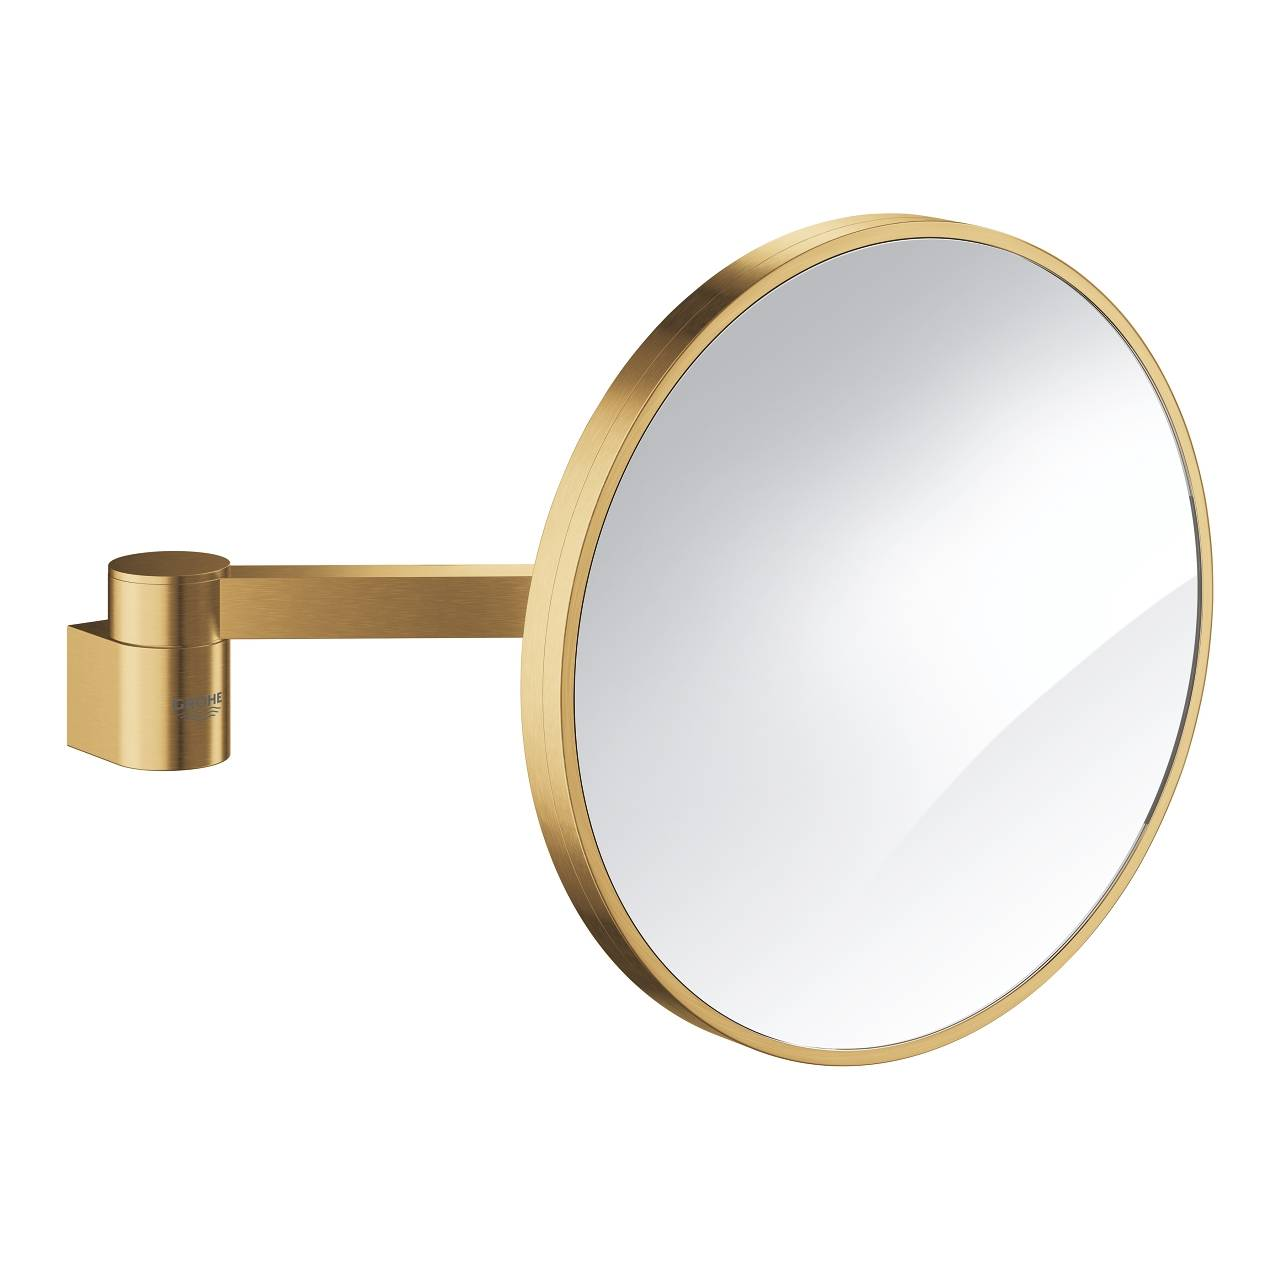 Grohe Selection - Miroir cosmétique mirrored / brushed cool sunrise